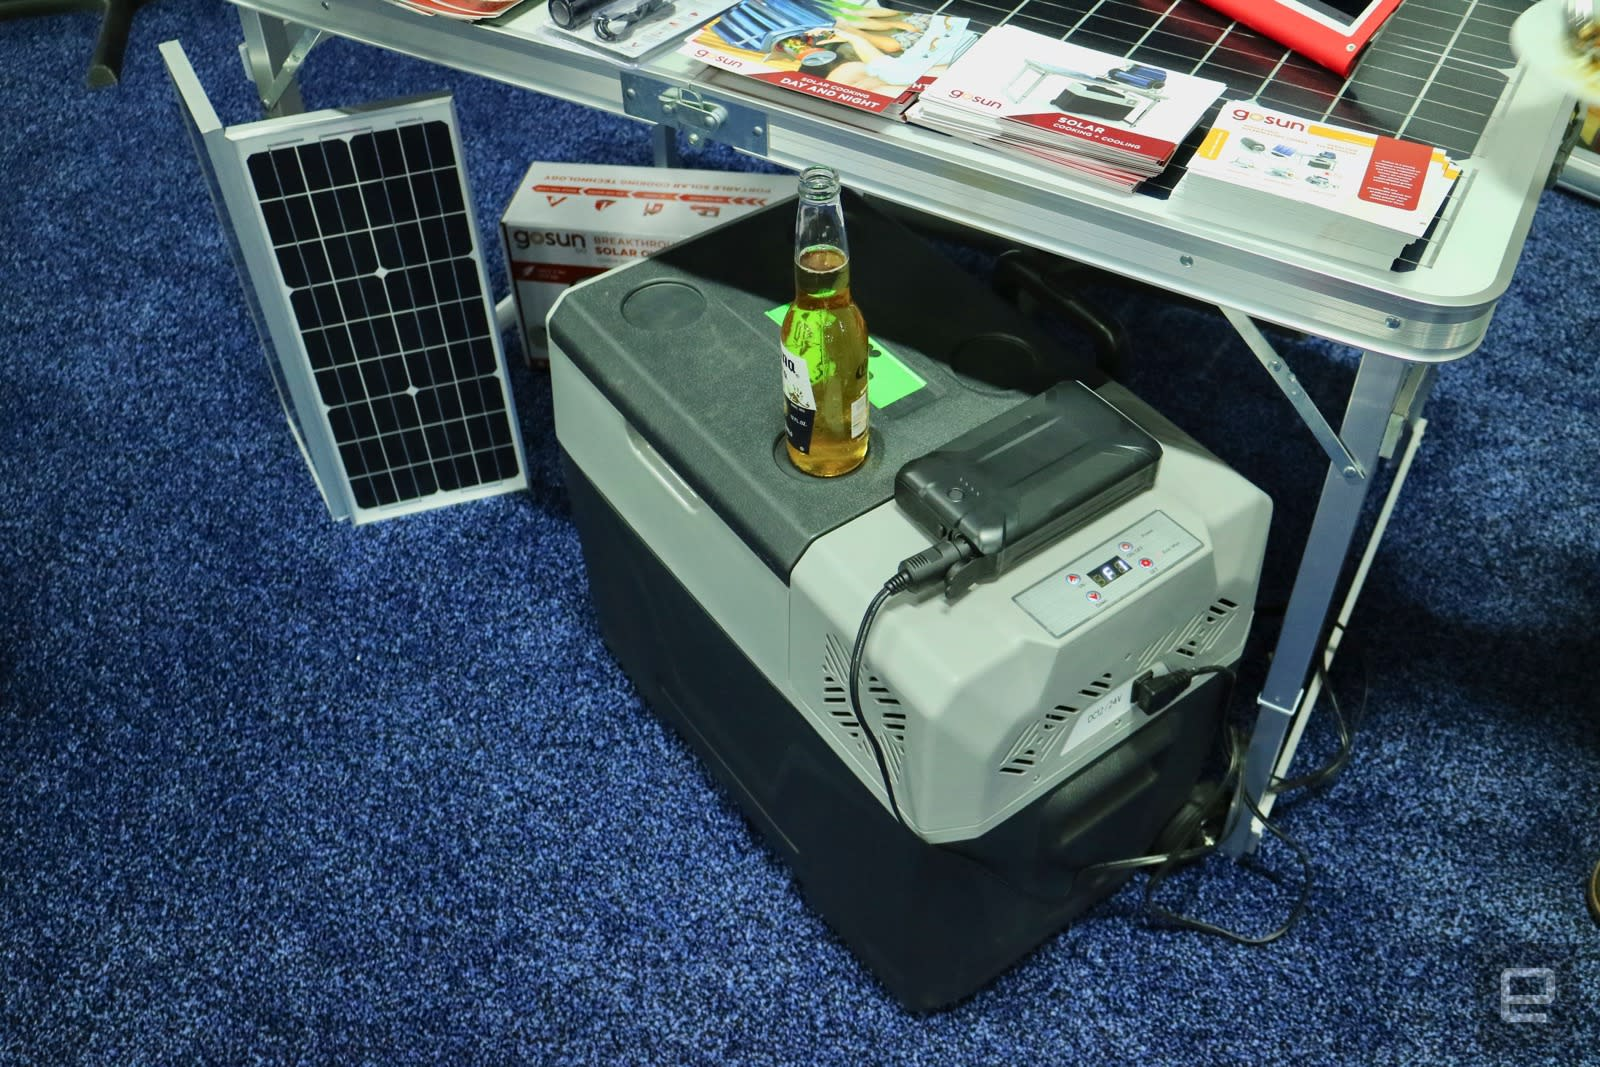 This Portable Solar Powered Oven Was Built For The Apocalypse